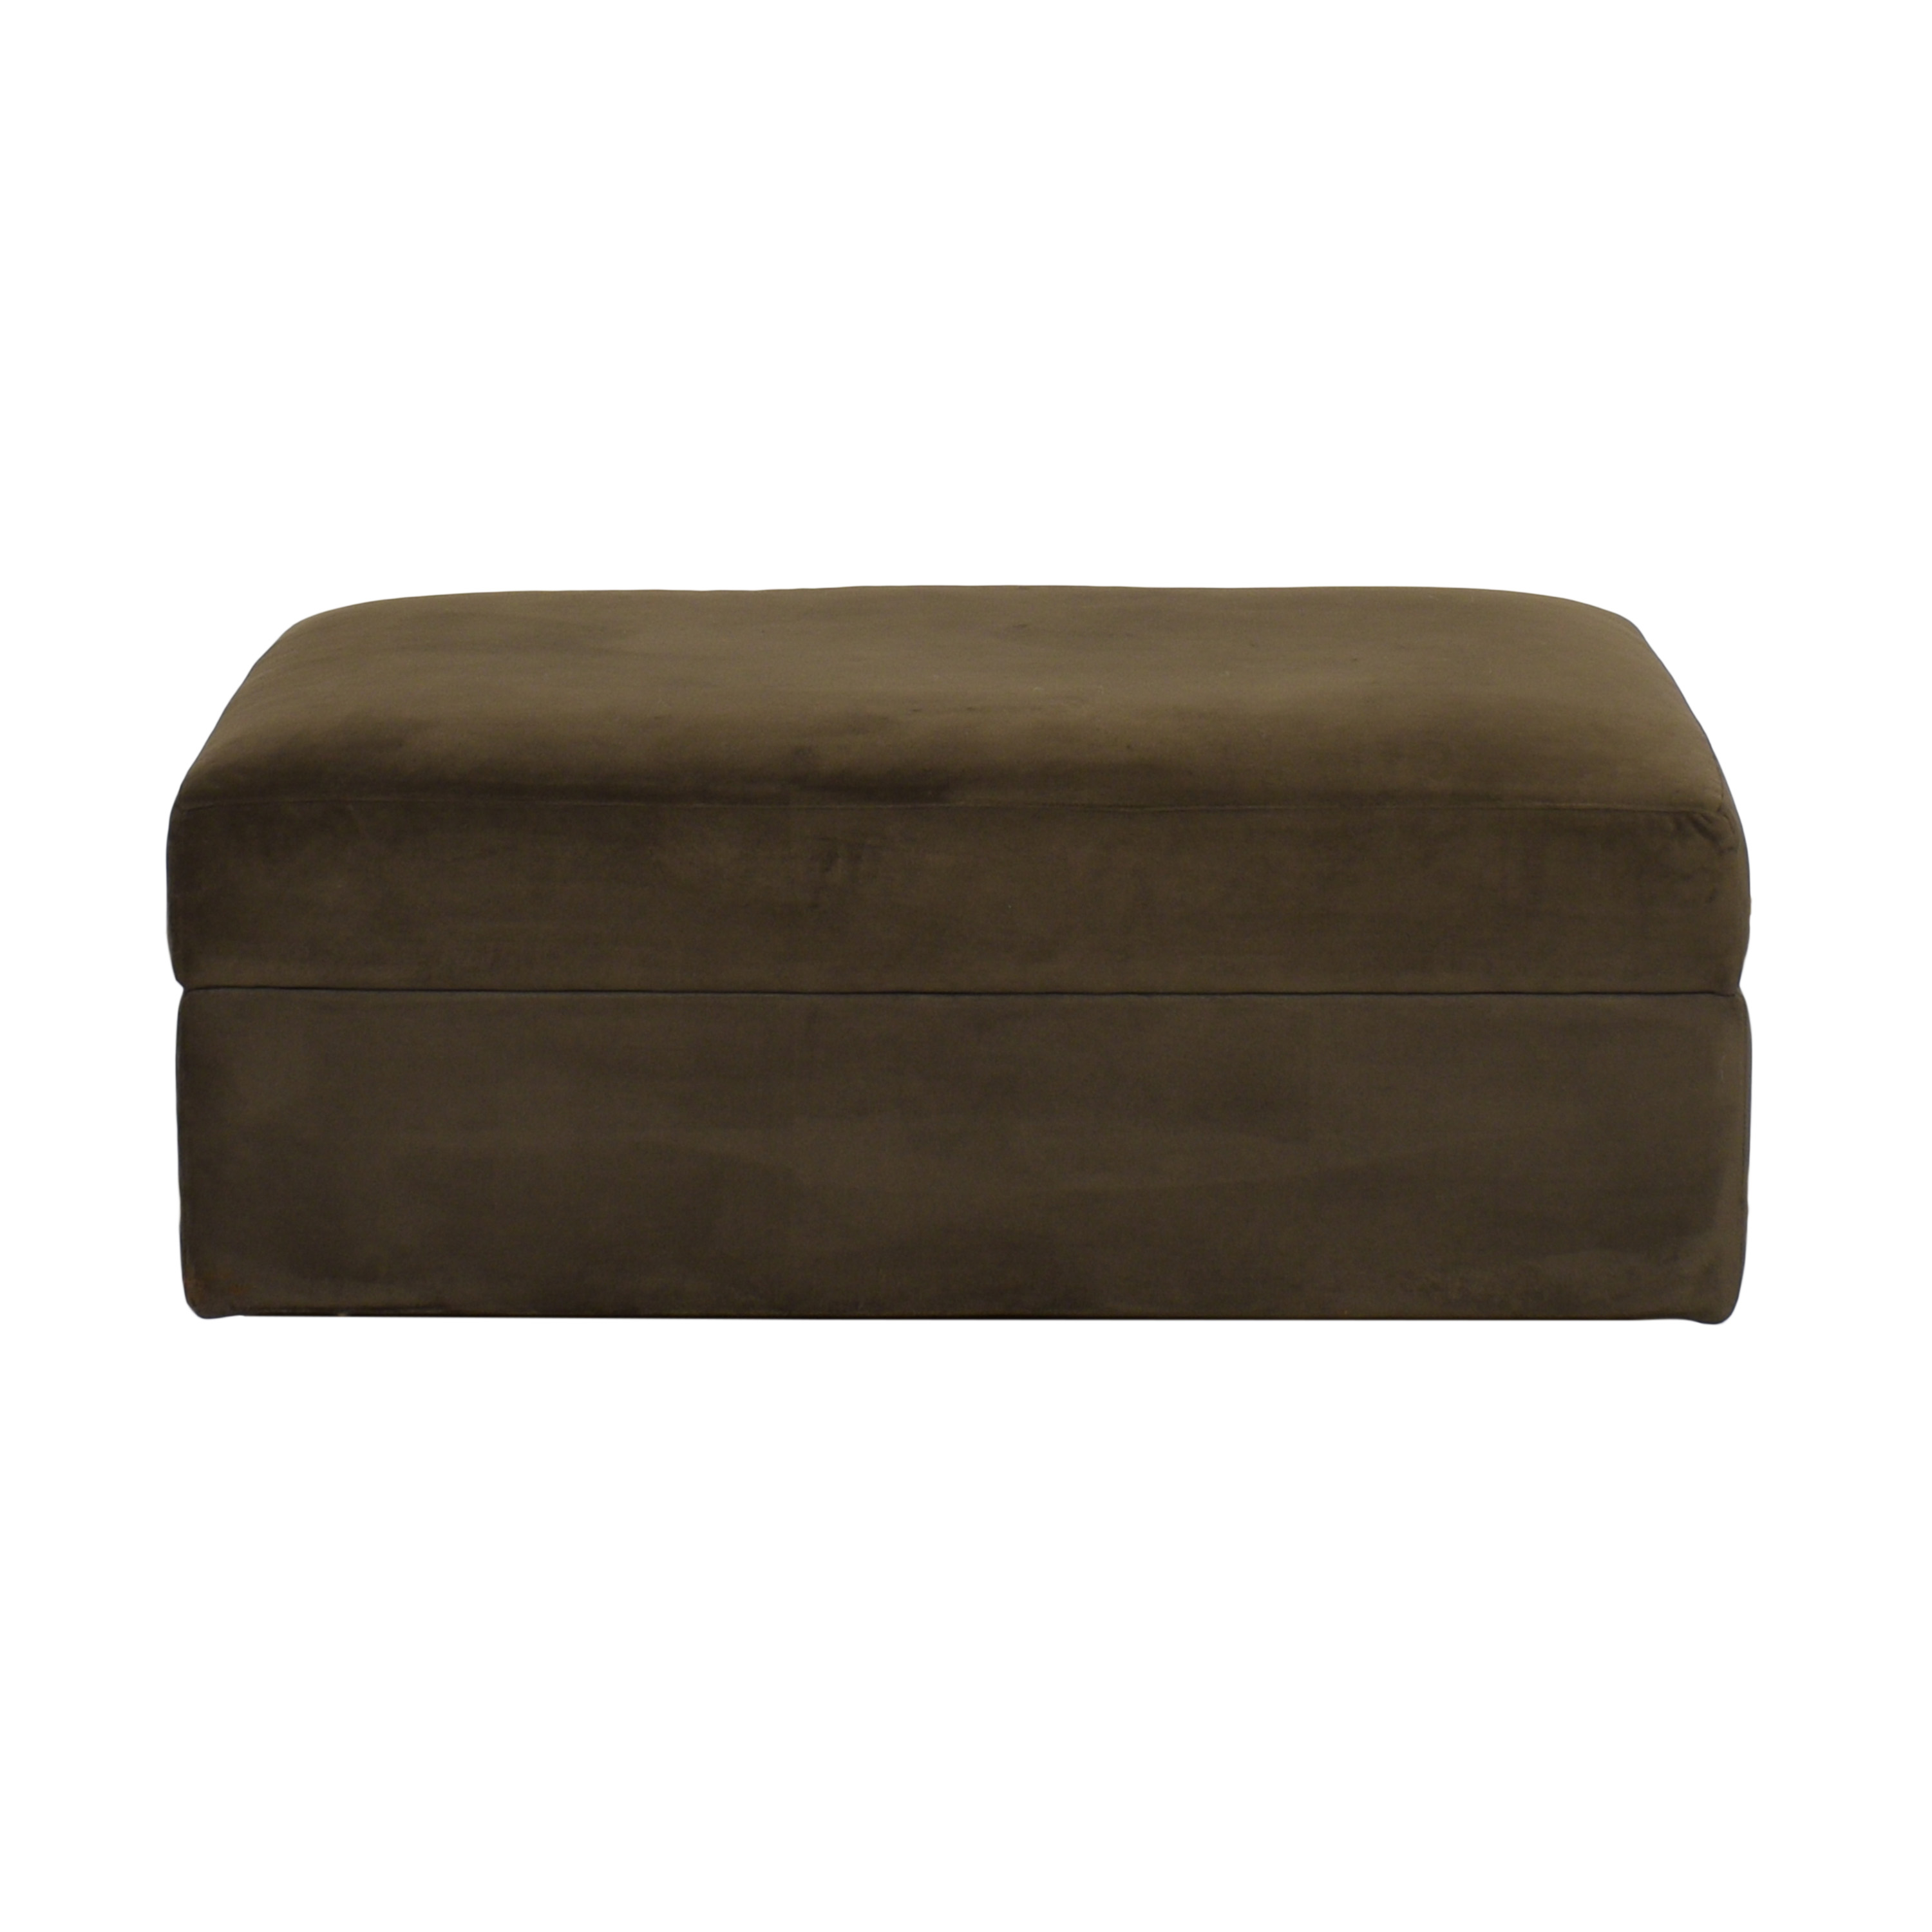 Crate & Barrel Crate & Barrel Lounge II Storage Ottoman with Casters Ottomans